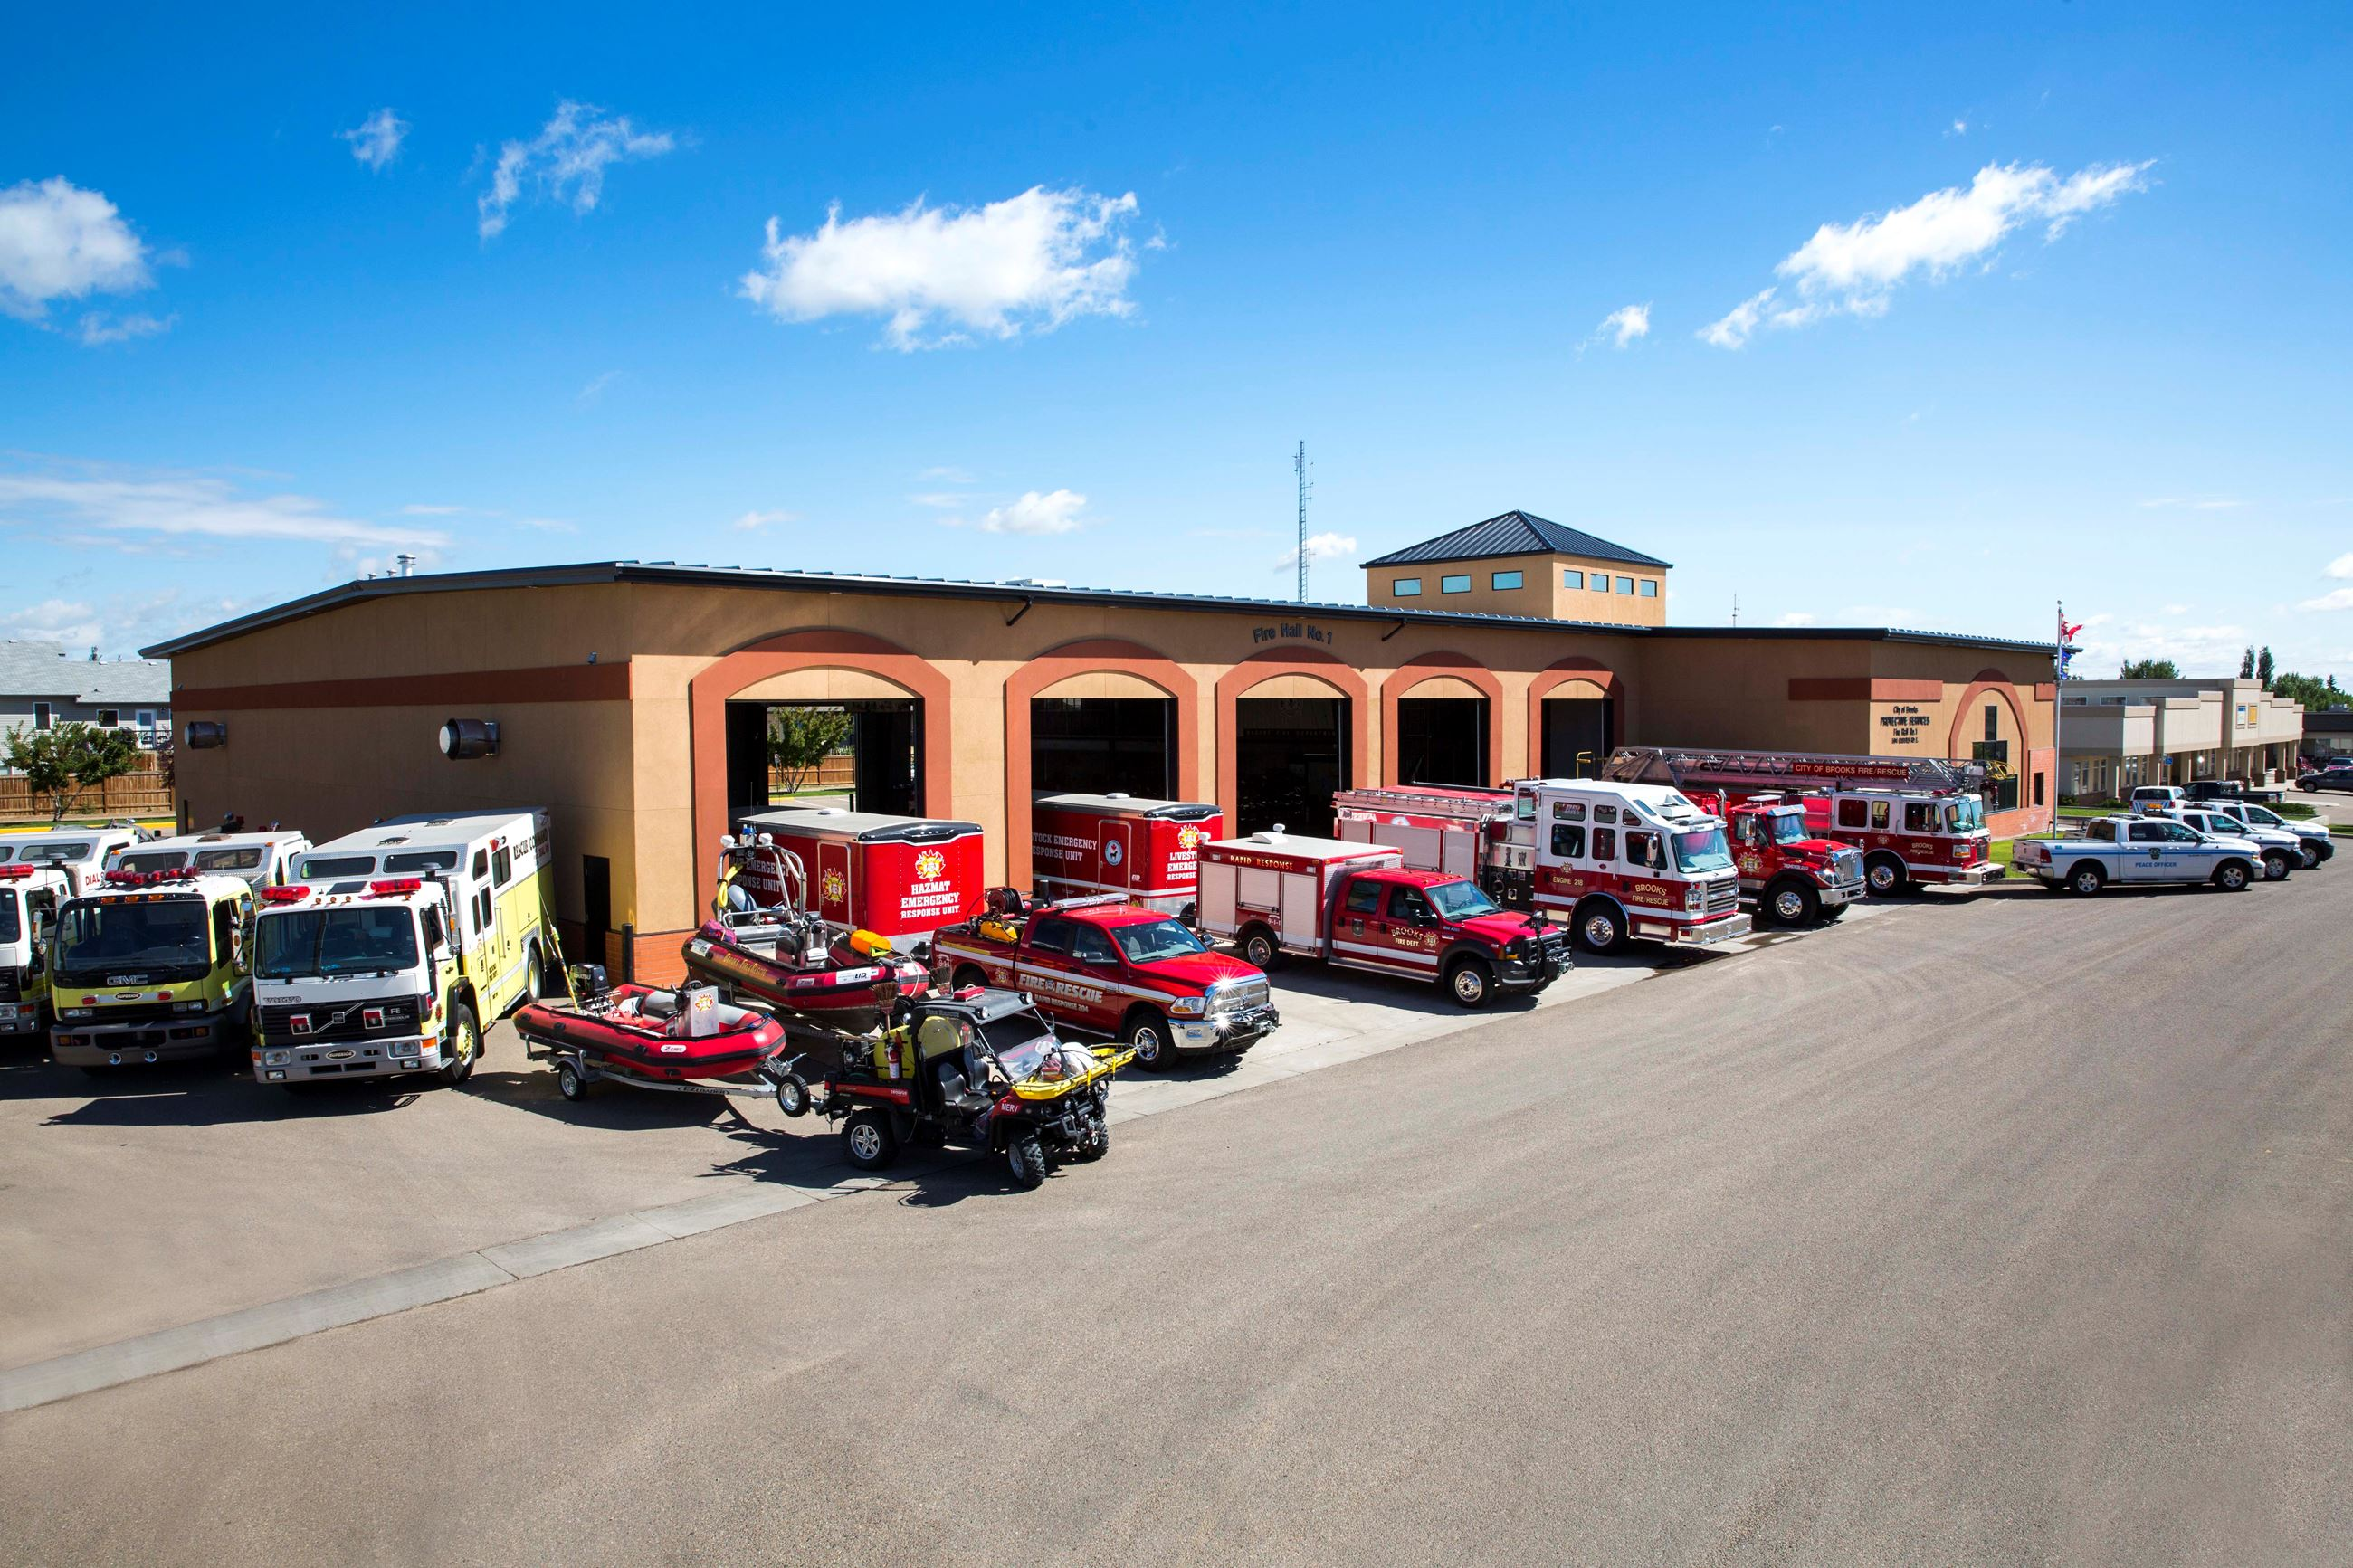 Fire station with emergency response vehicles parked in all bays